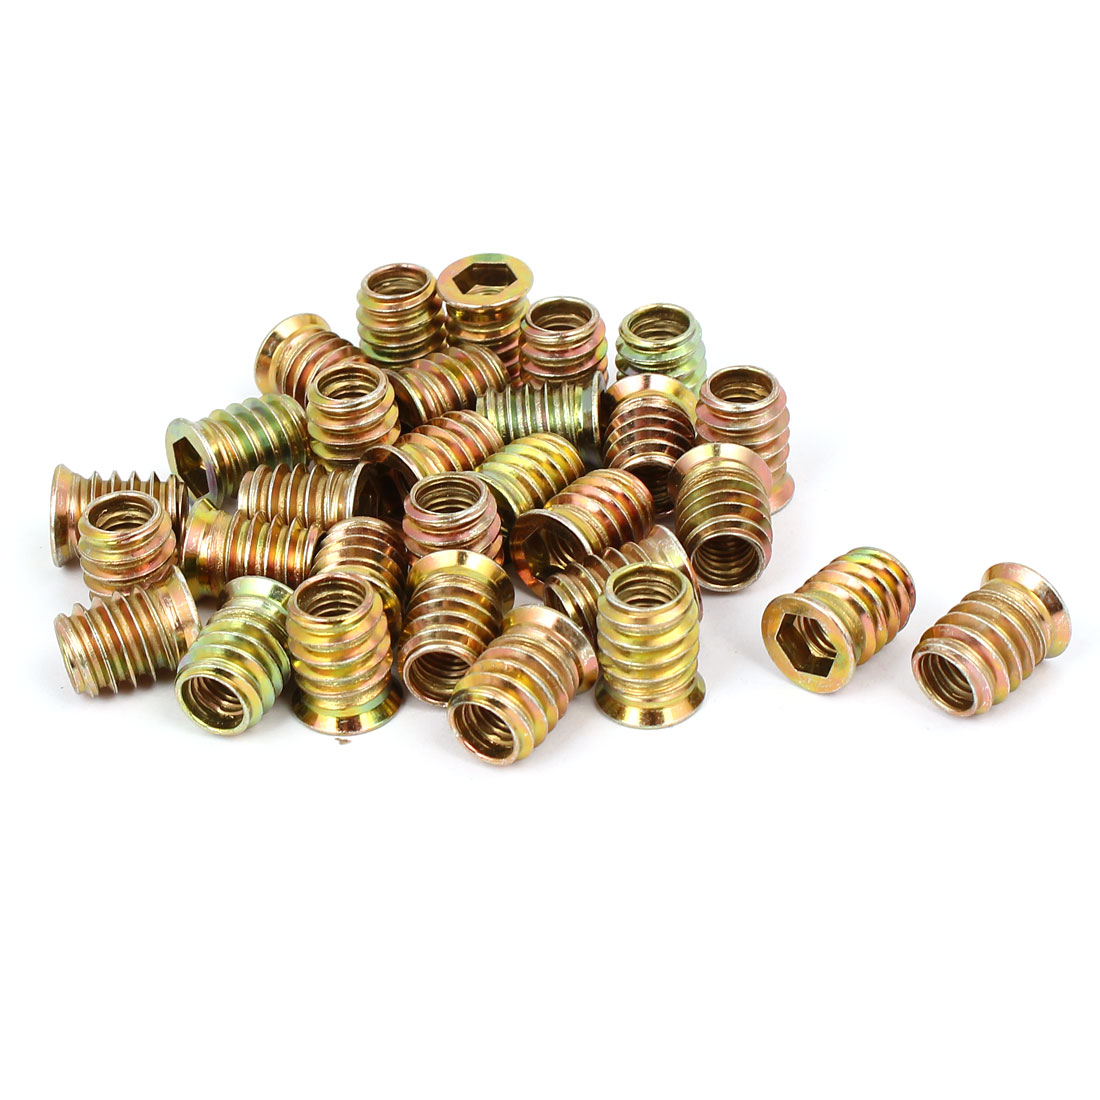 Wood Furniture Fixing Insert Interface Hex Socket E-Nut 8mmx17mm 30pcs